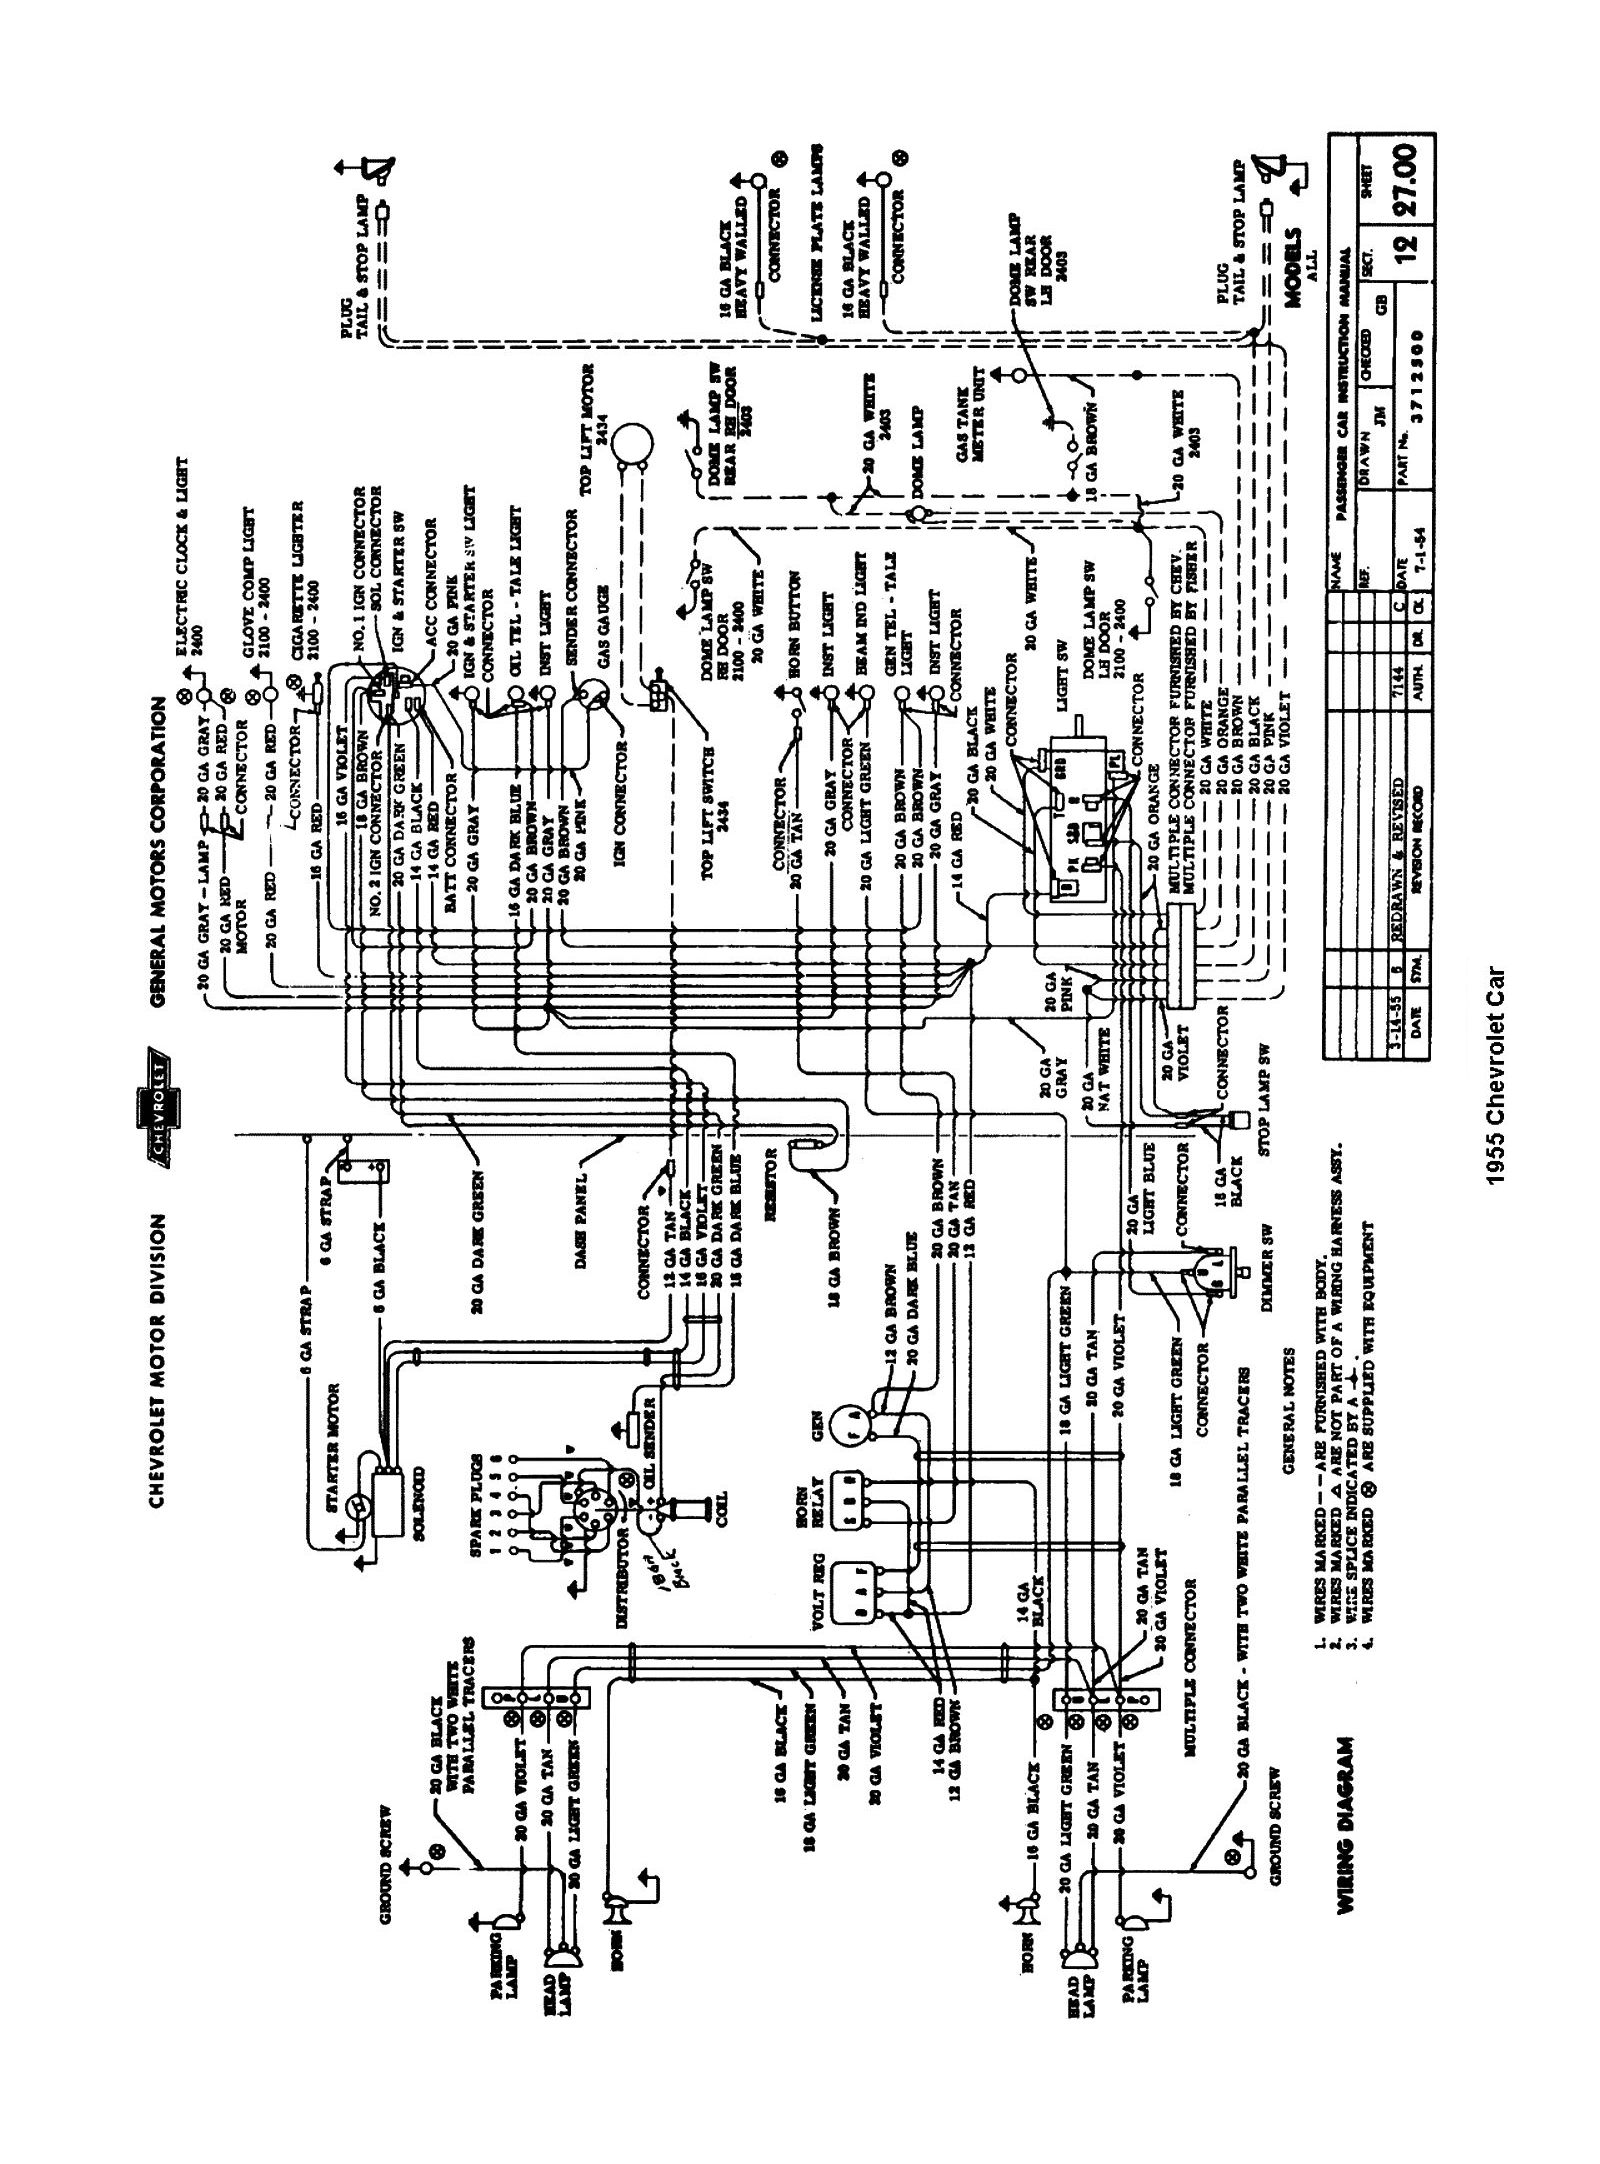 55car1 1955 chevy wiring diagram 1955 wiring diagrams instruction 1953 chevy bel air wiring diagram at suagrazia.org